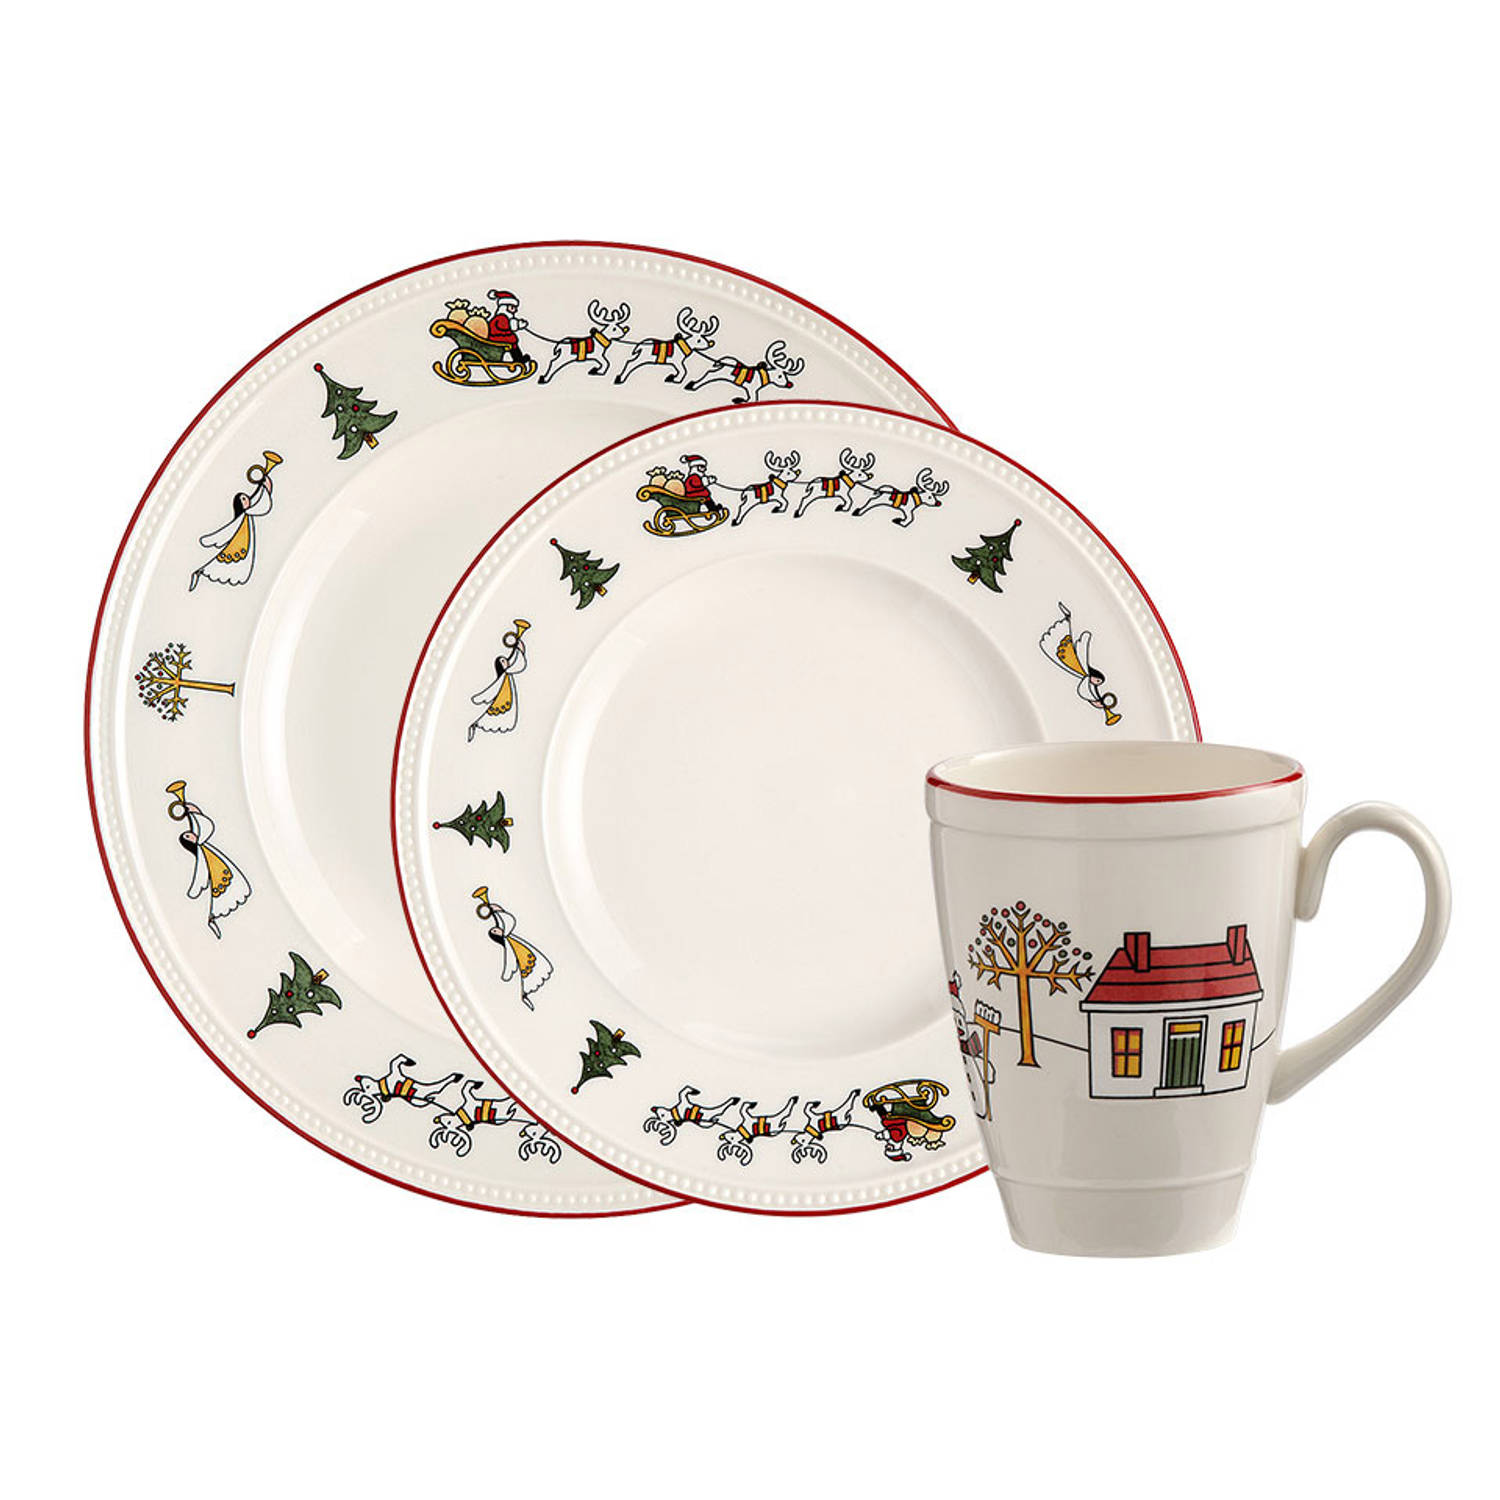 Wedgwood Windsor Christmas serviesset - 12-delig - 4 persoons